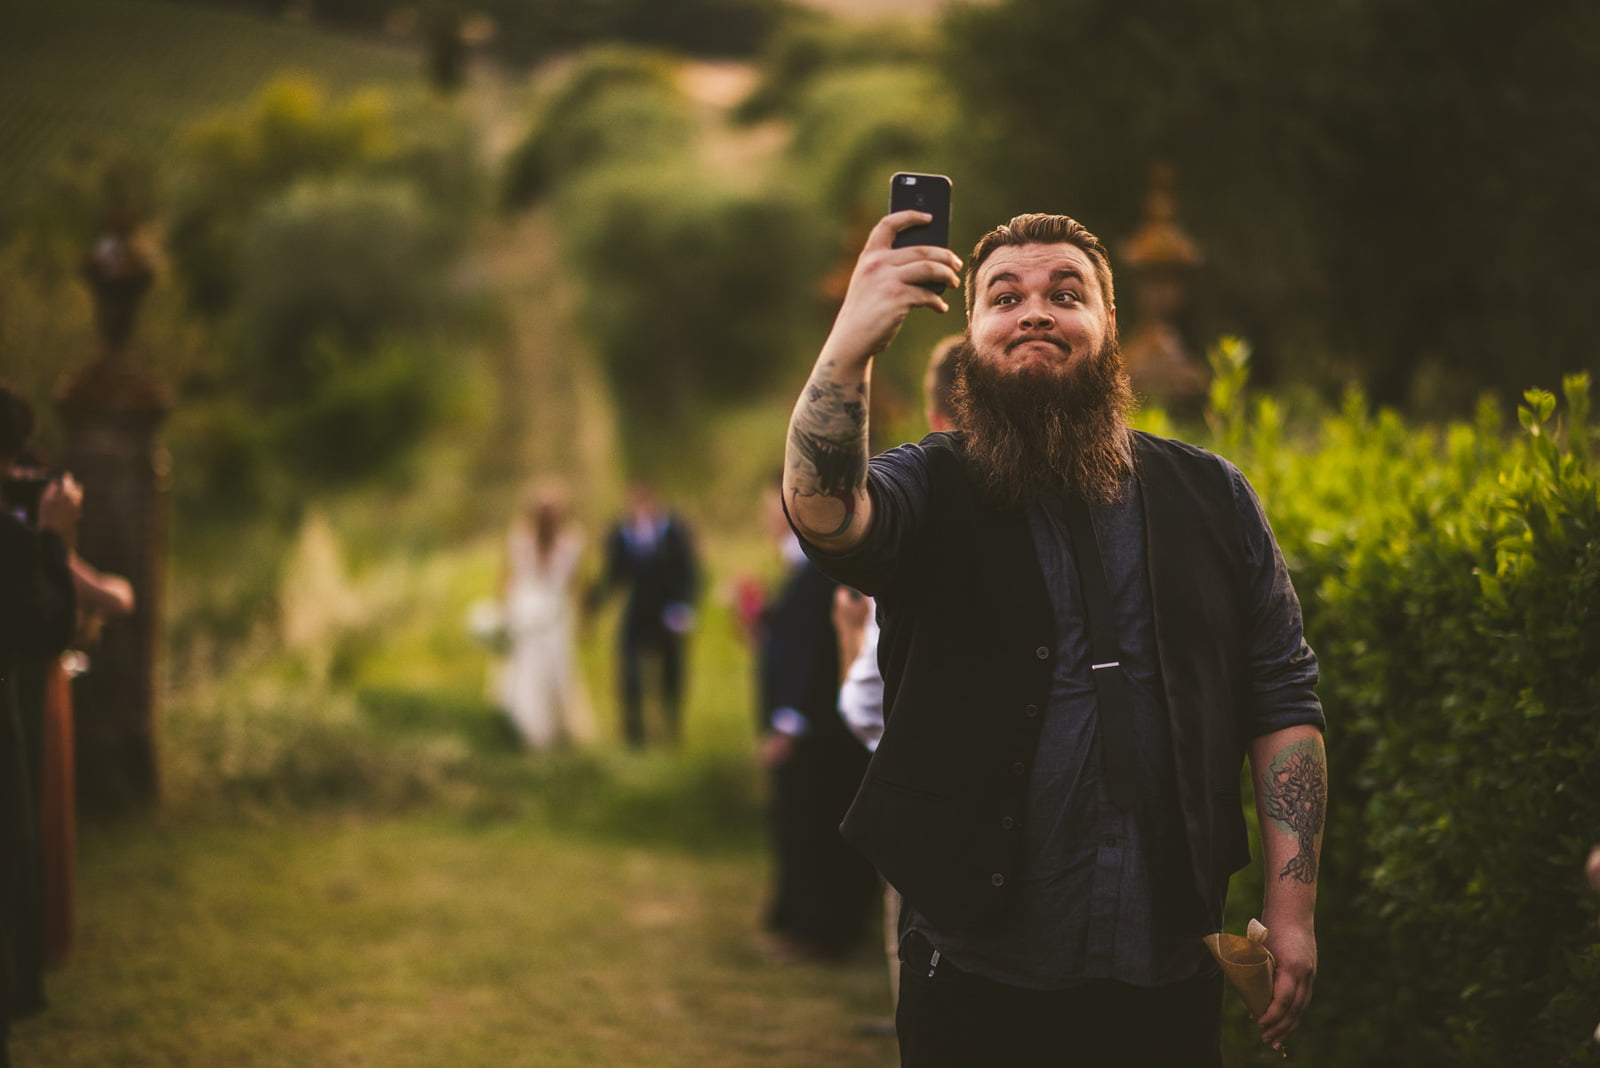 A+L Wedding at Montechiaro, Siena by Federico Pannacci 92